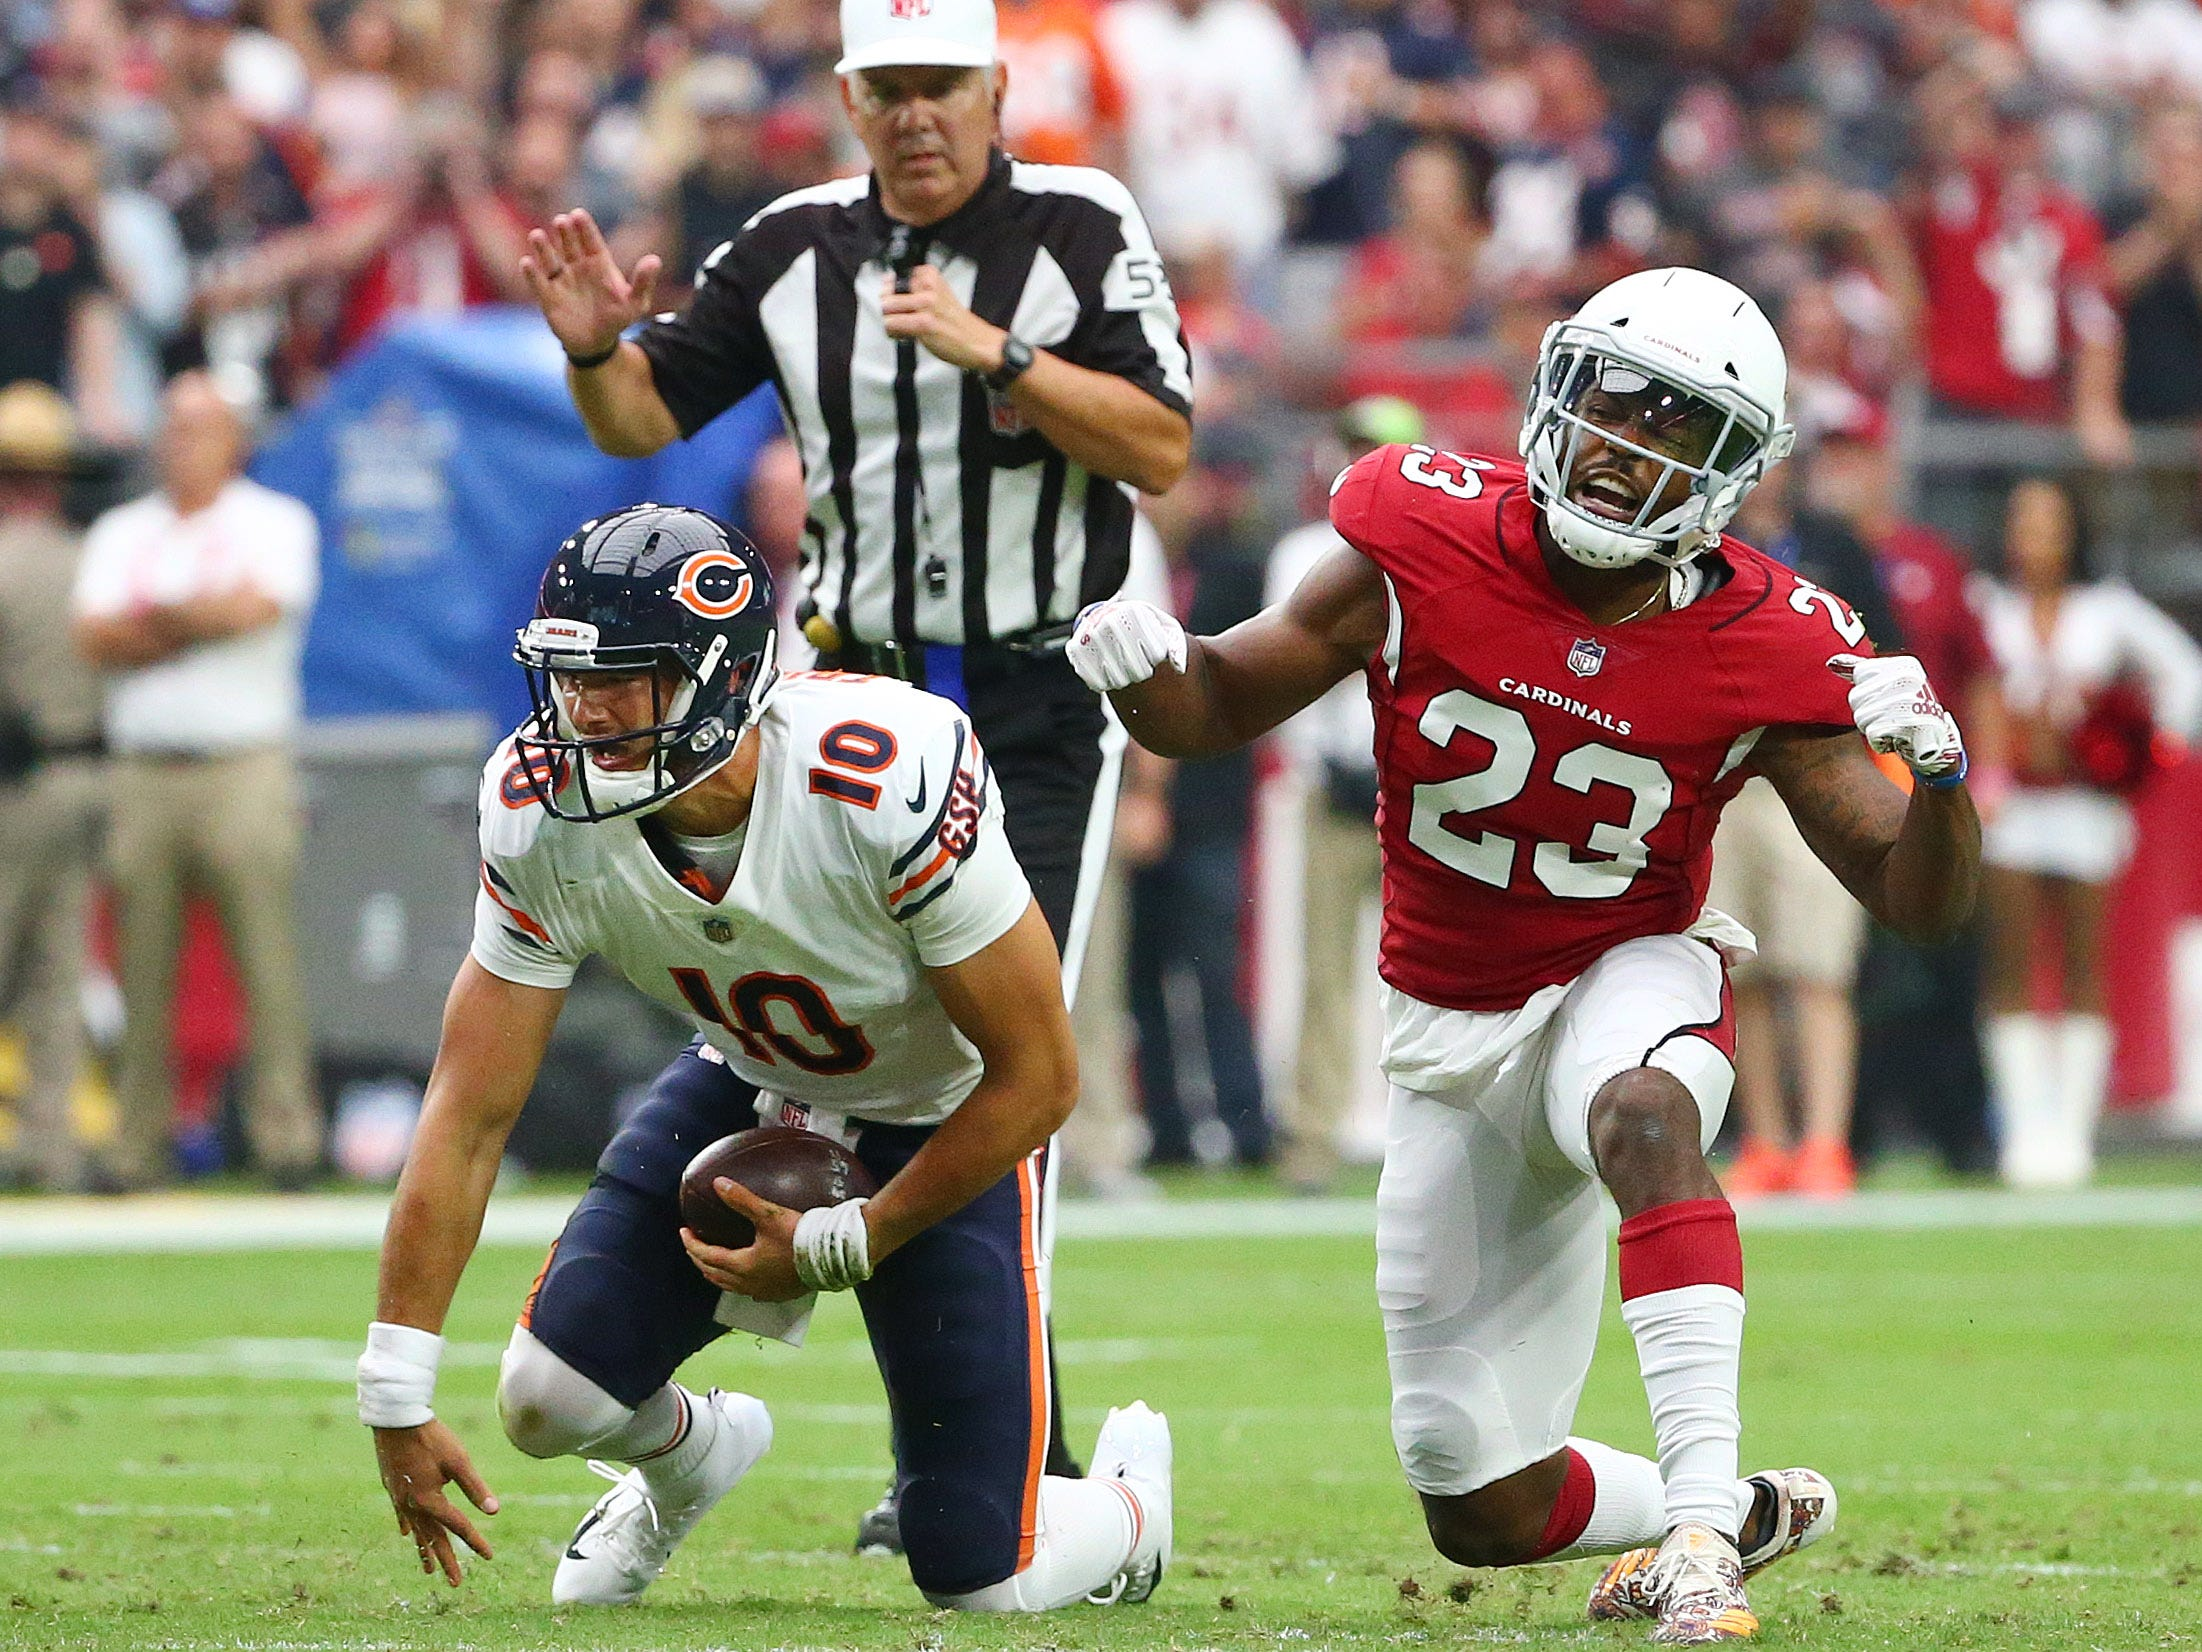 Arizona Cardinals cornerback Bene Benwikere sacks Chicago Bears quarterback Mitchell Trubisky in the first half at State Farm Stadium in Glendale, Ariz.